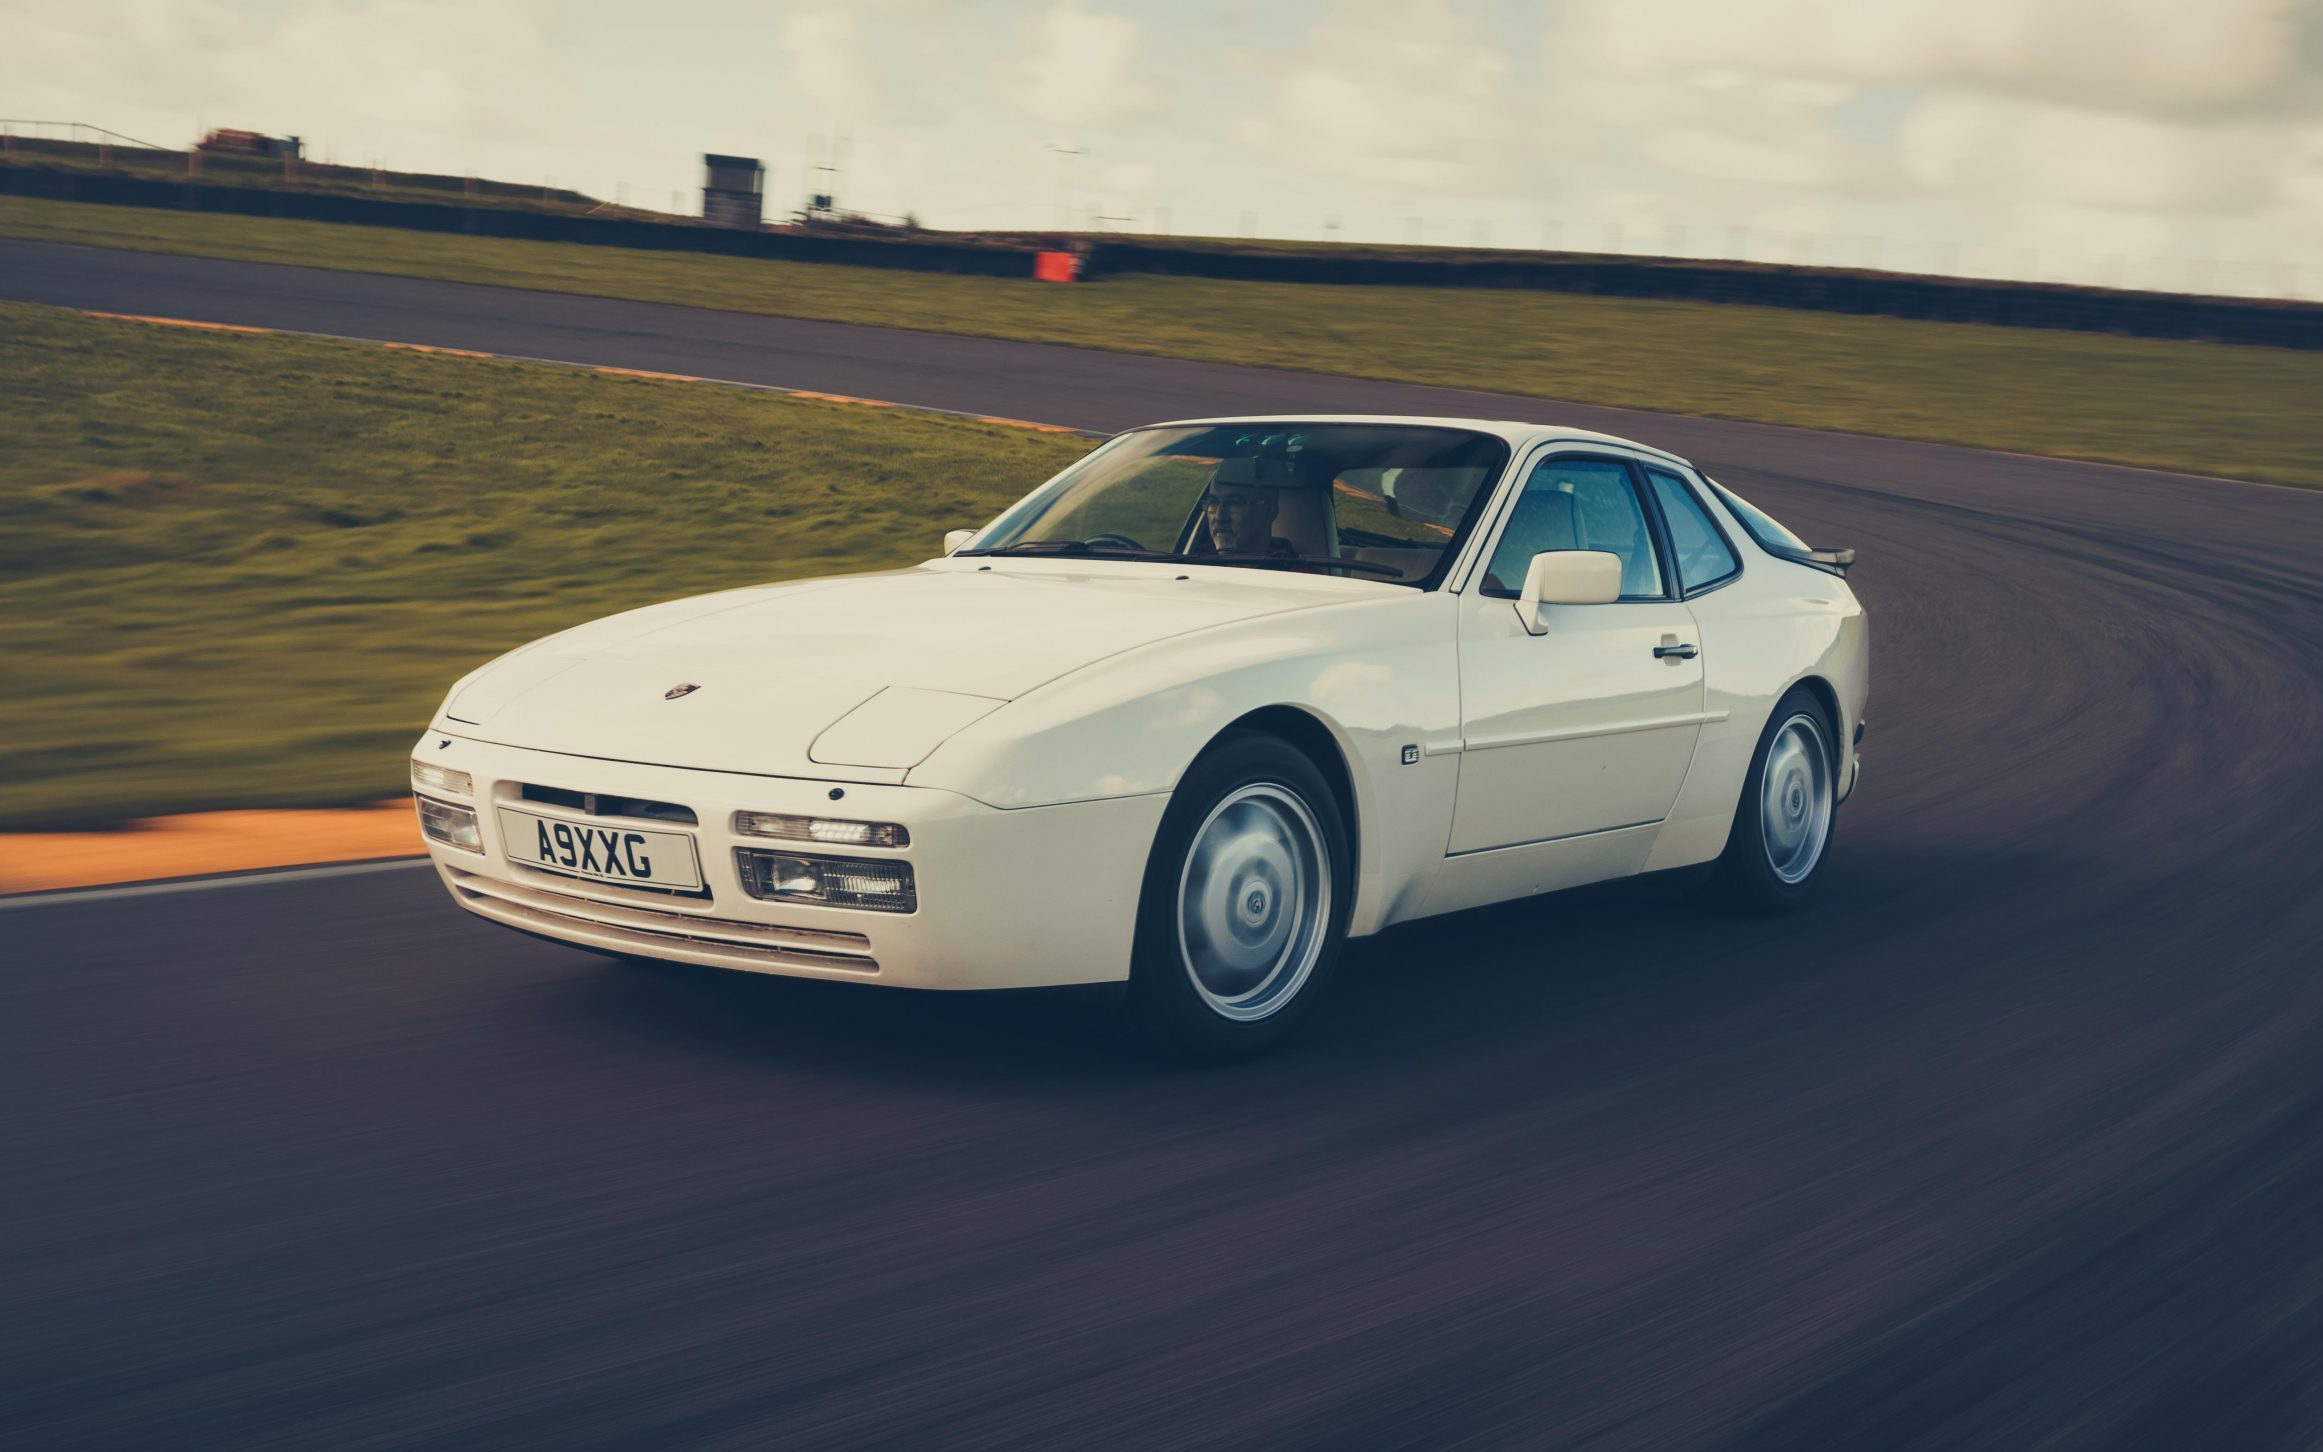 How to choose and buy the best modern-classic car